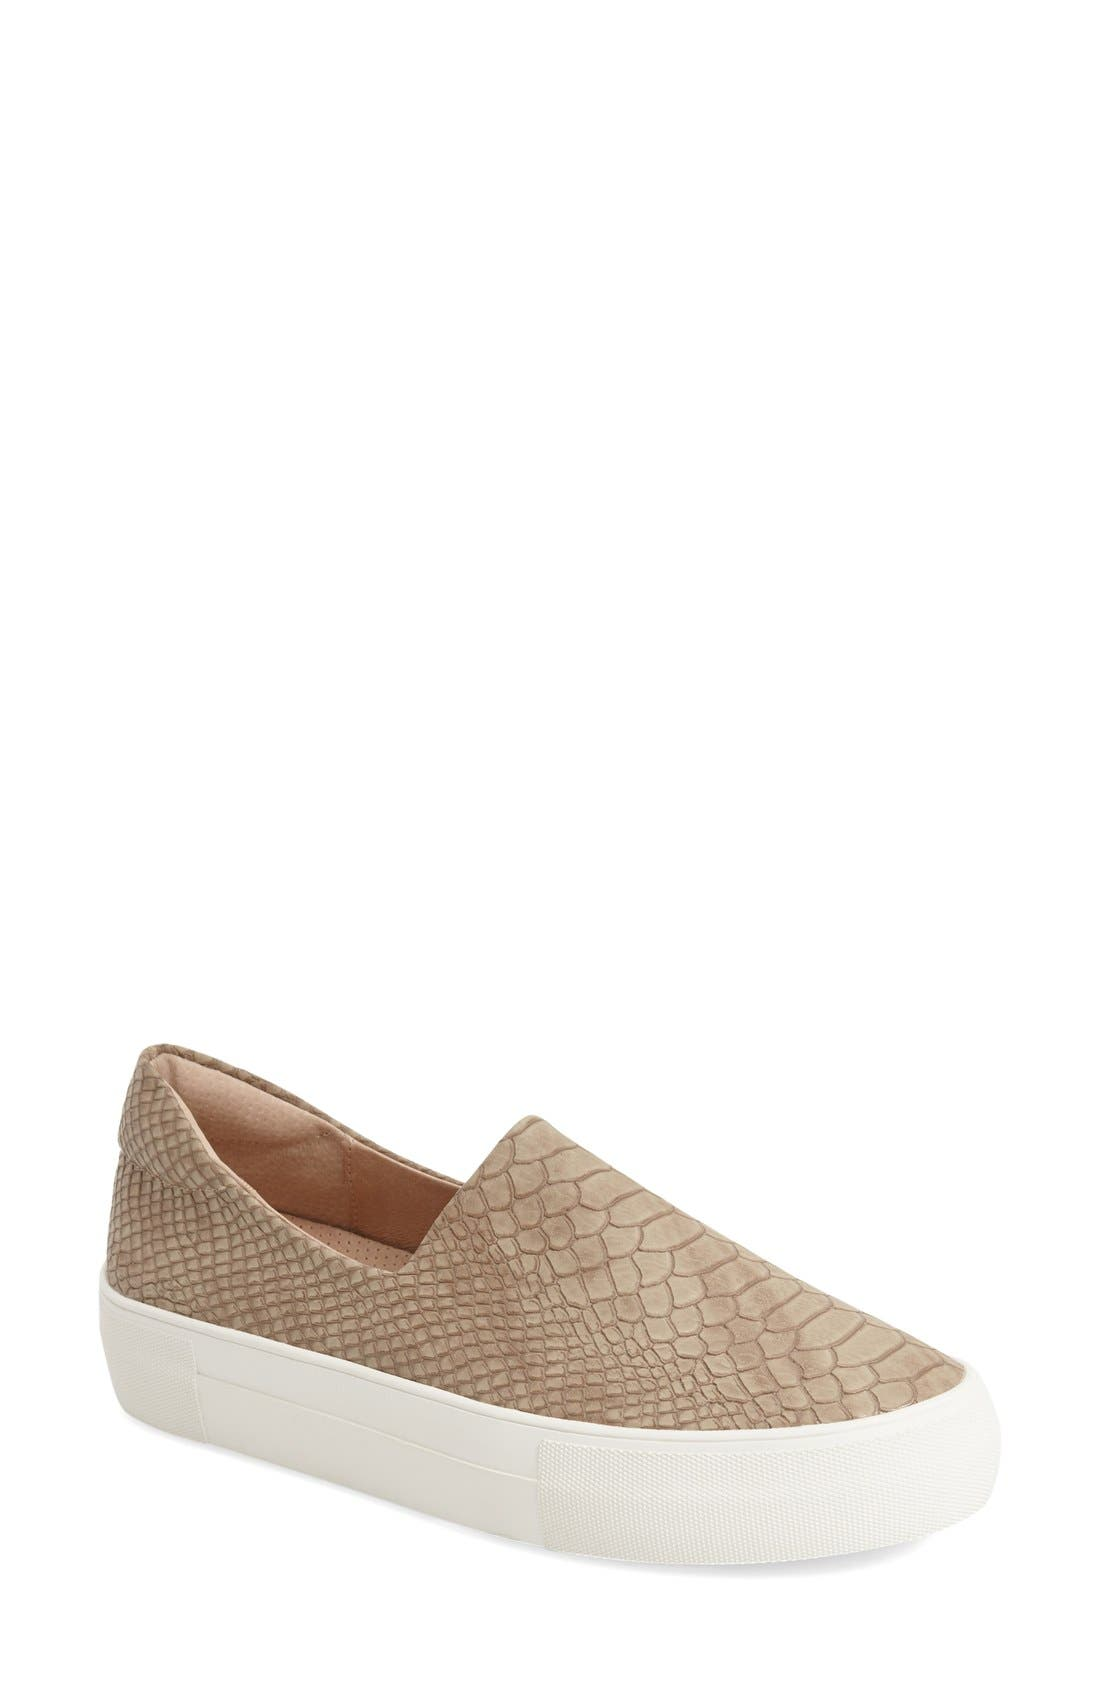 'Ariana' Platform Sneaker,                         Main,                         color, TAUPE EMBOSSED LUX